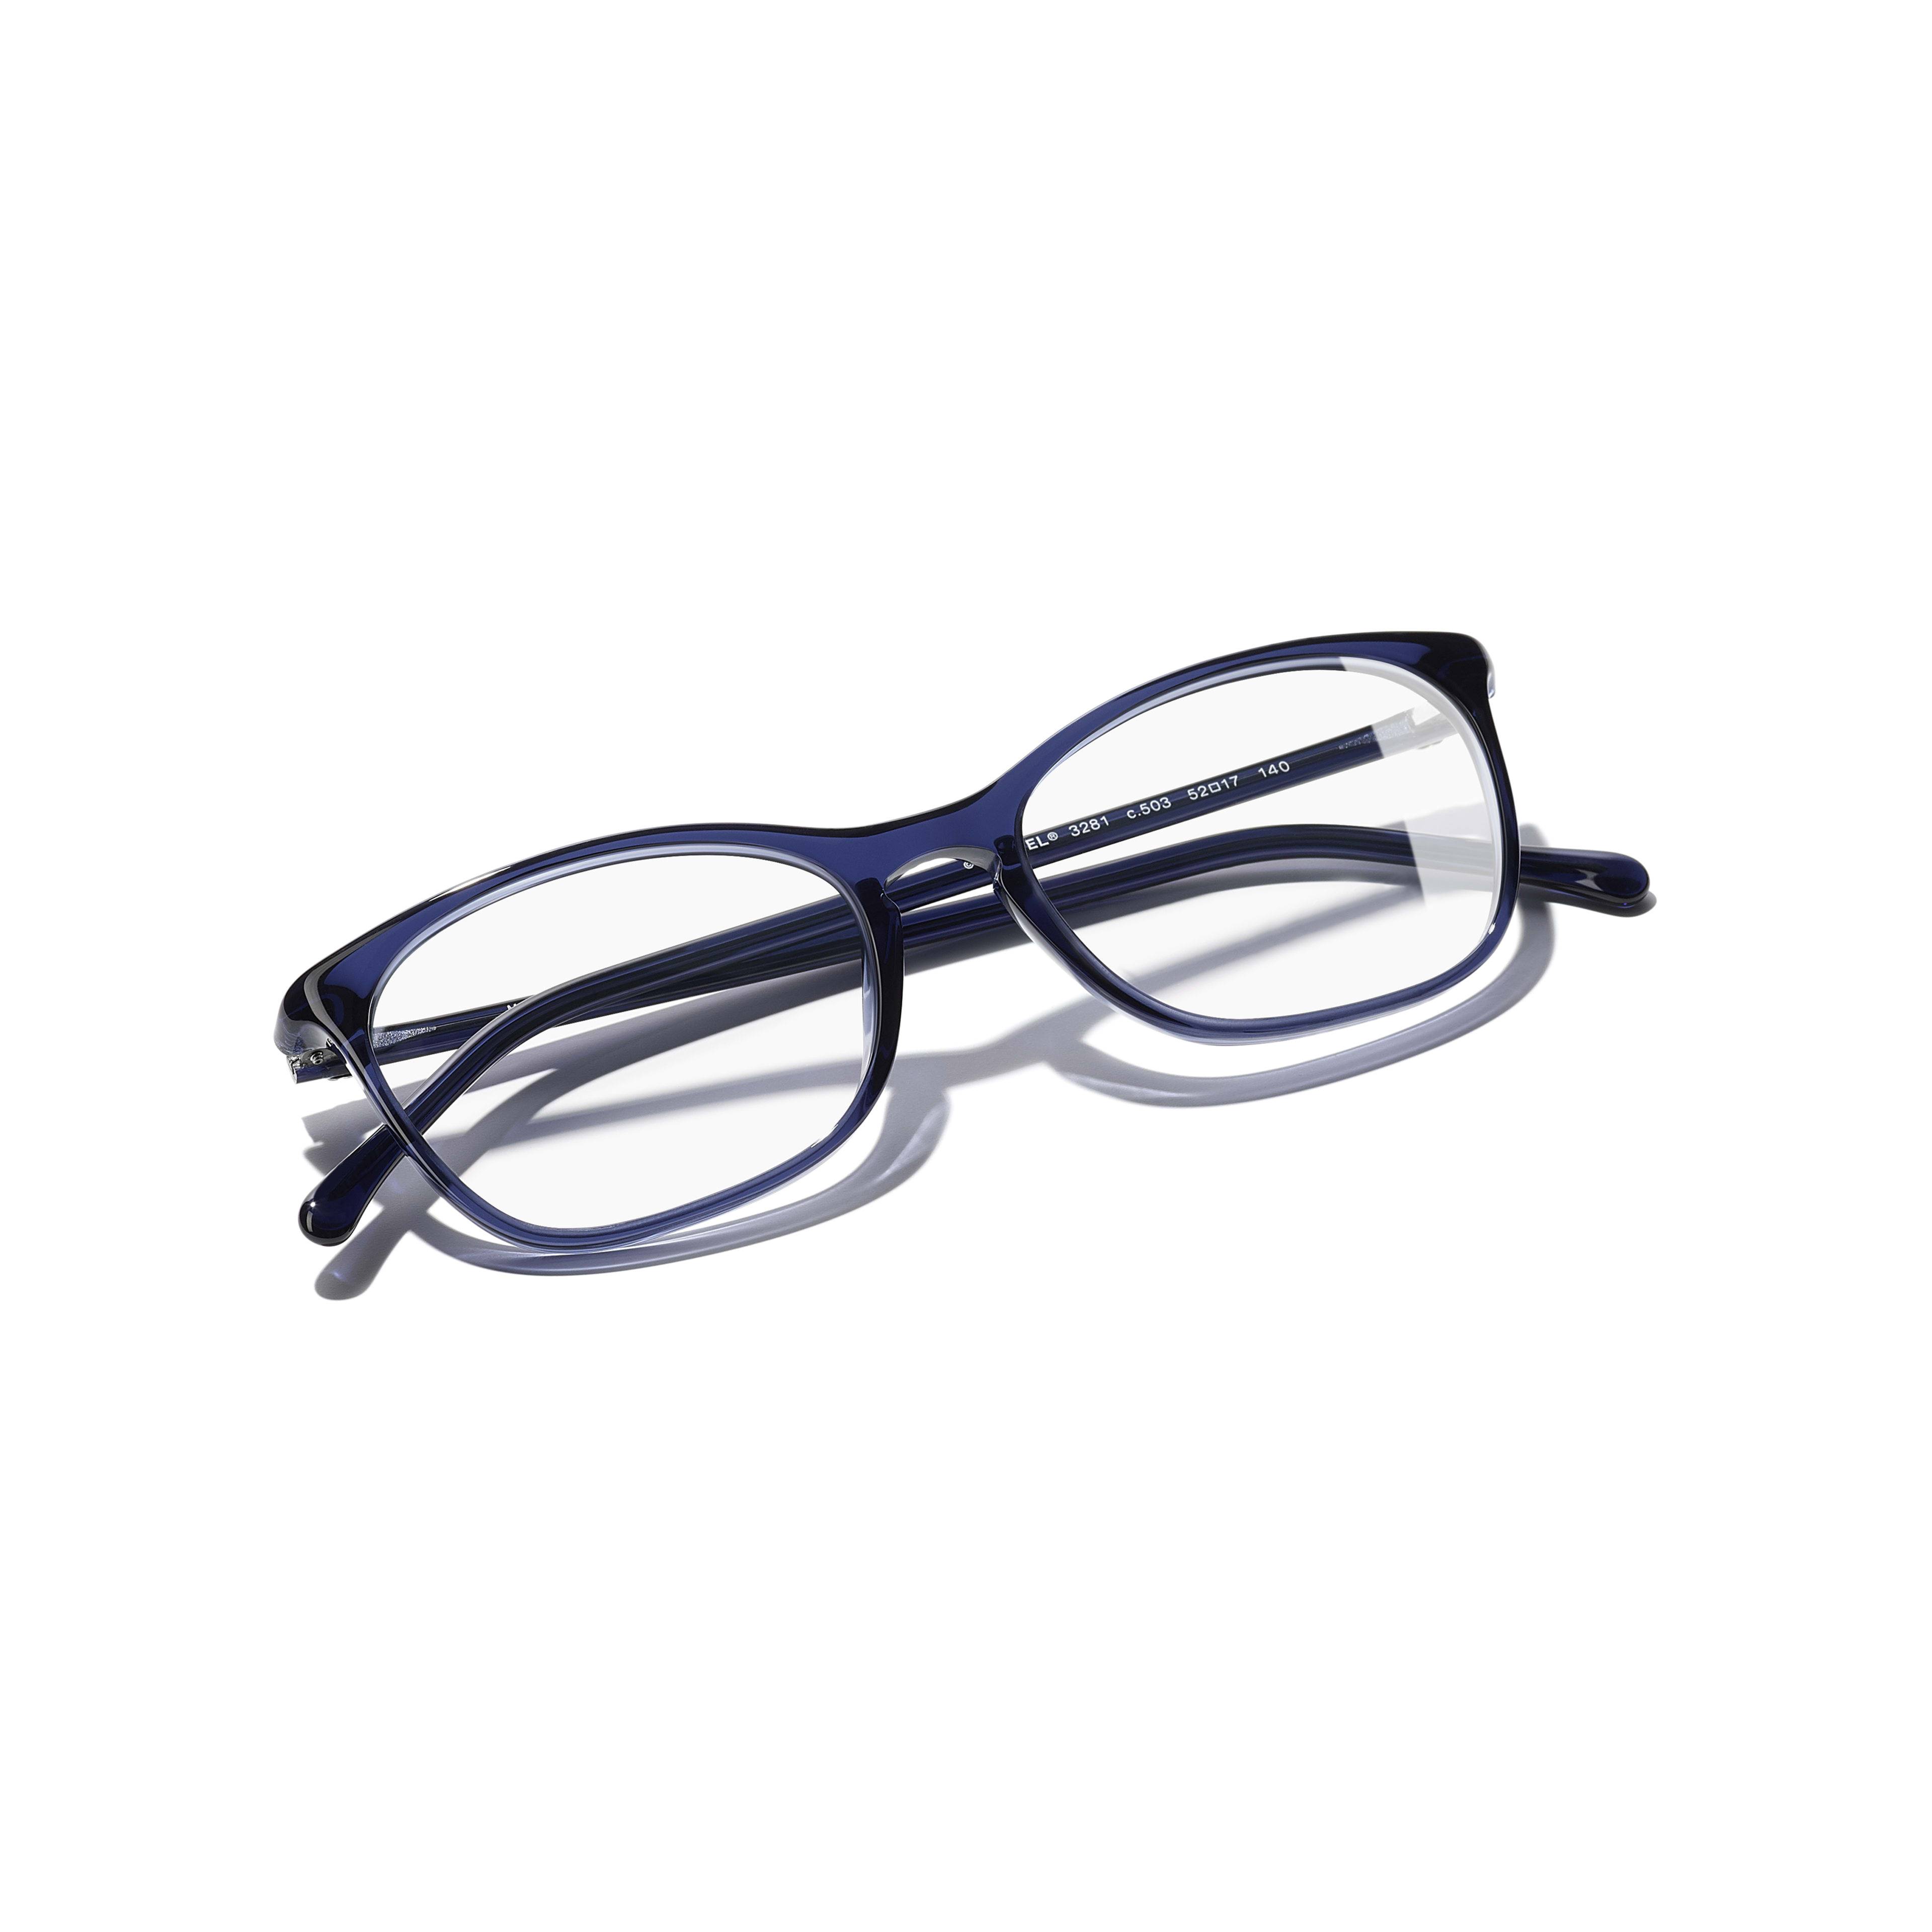 Rectangle Eyeglasses - Dark Blue - Acetate - Extra view - see full sized version